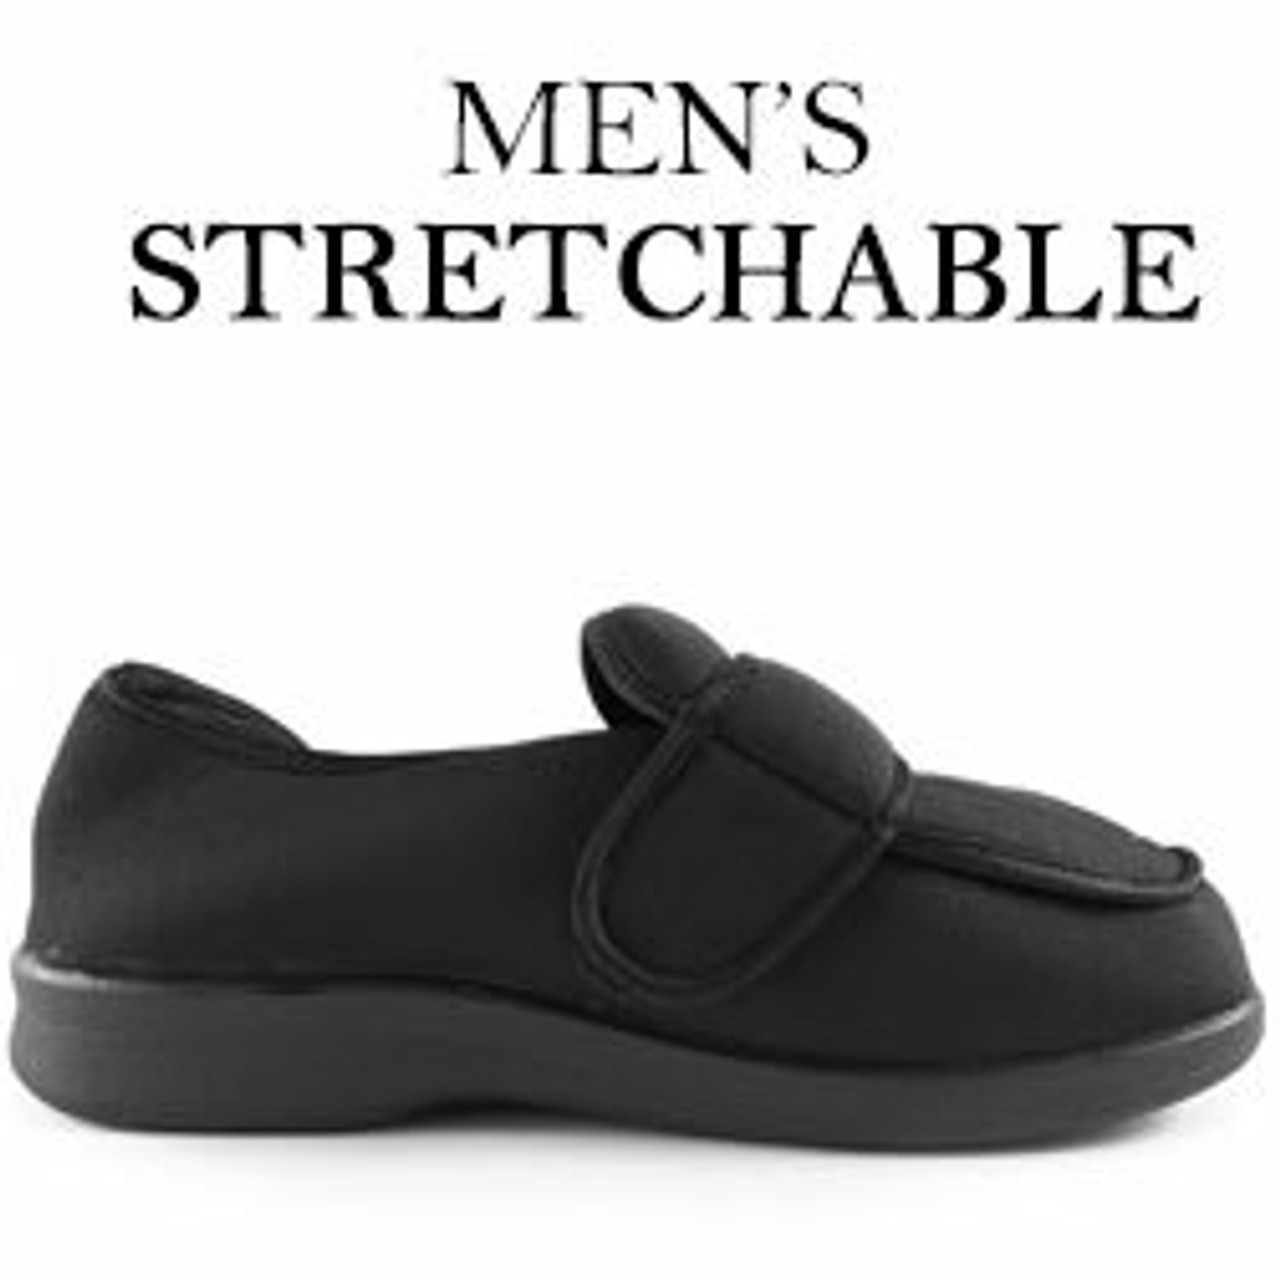 Stretchable Shoes For Men   Mens Stretch Fit Shoes